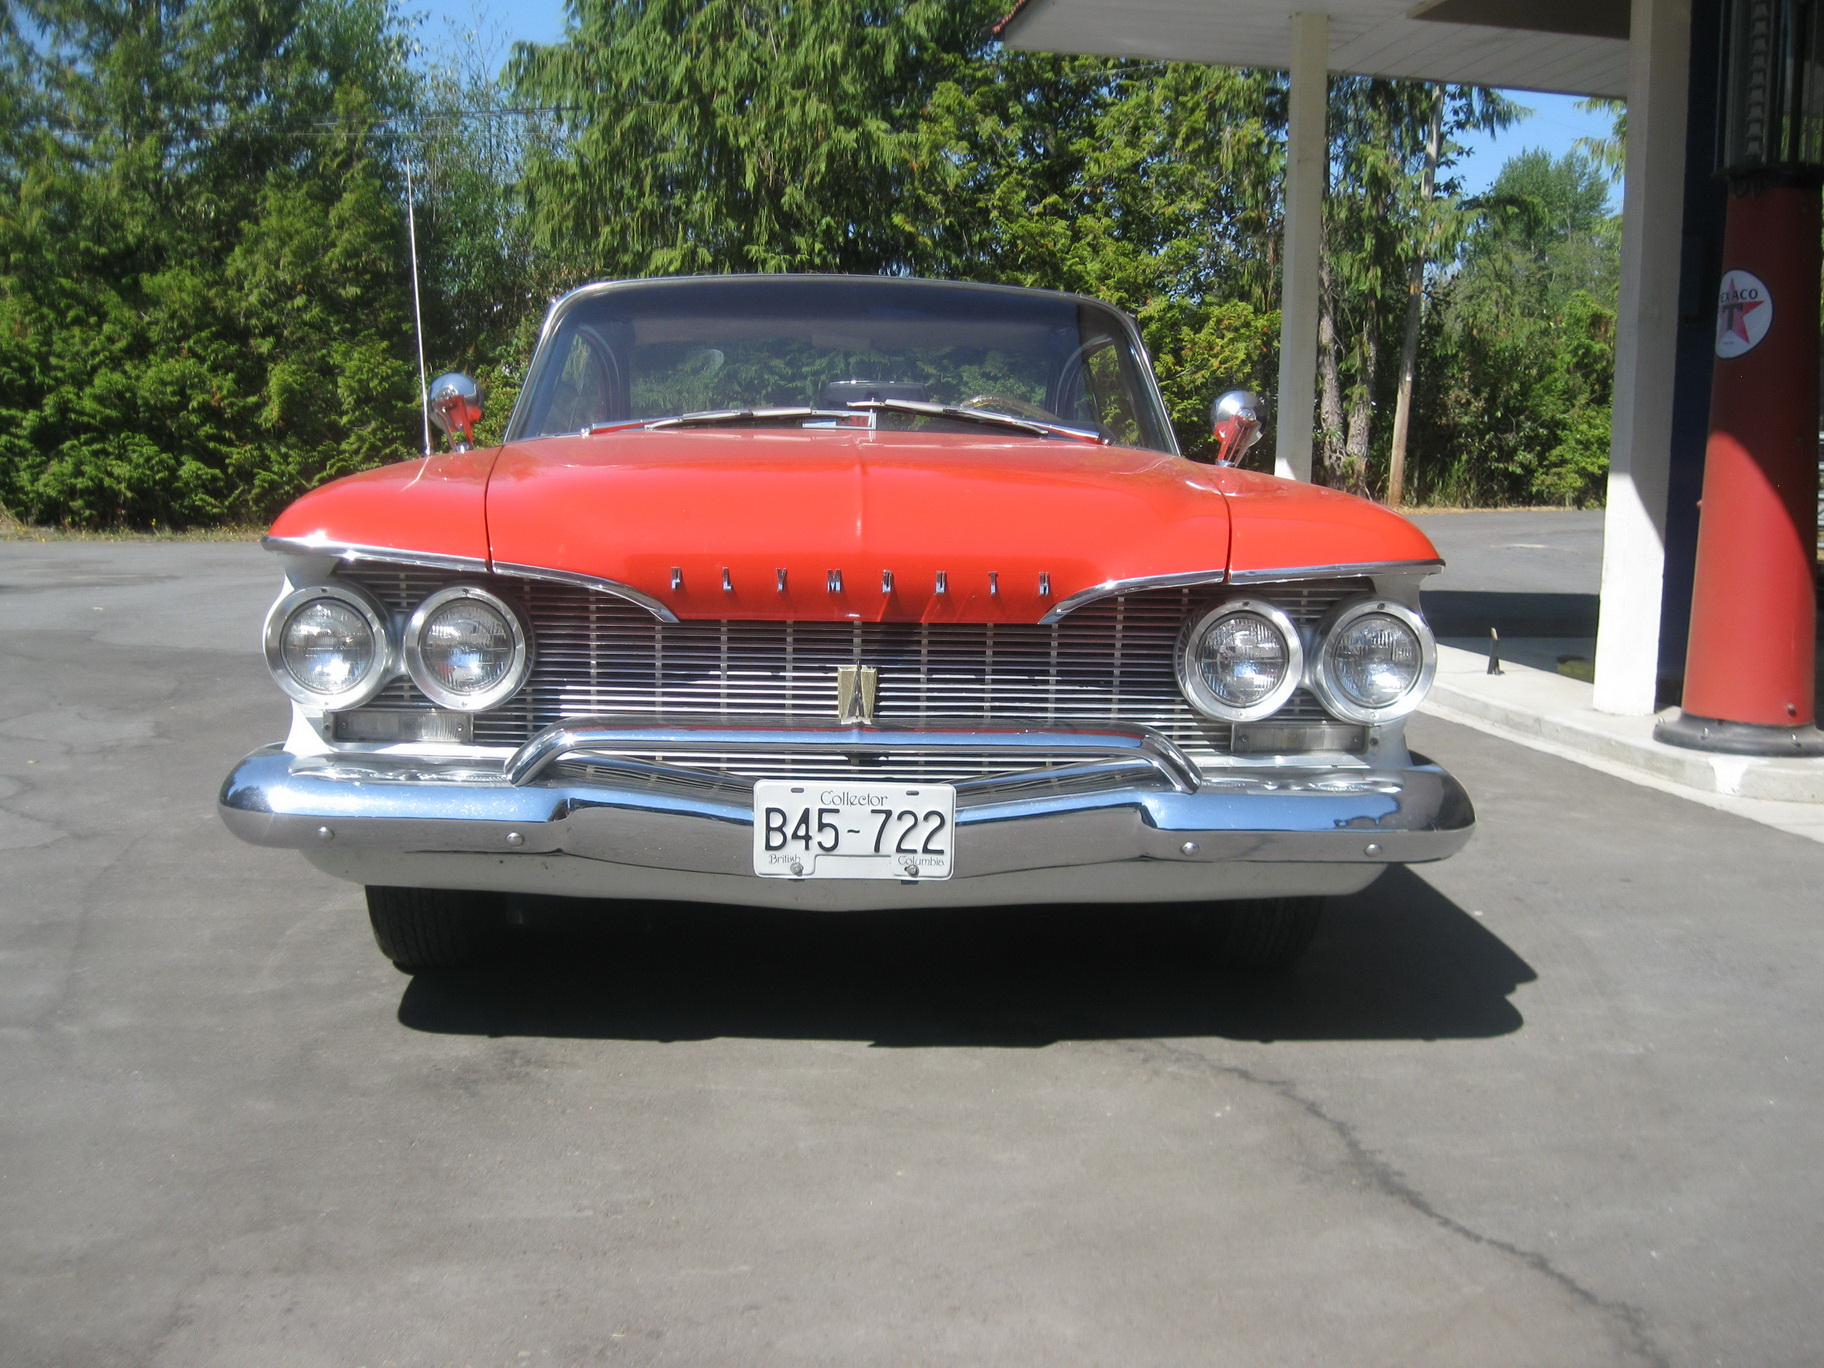 1960 Plymouth Fury Hardtop The Rod God 1950s 1 21